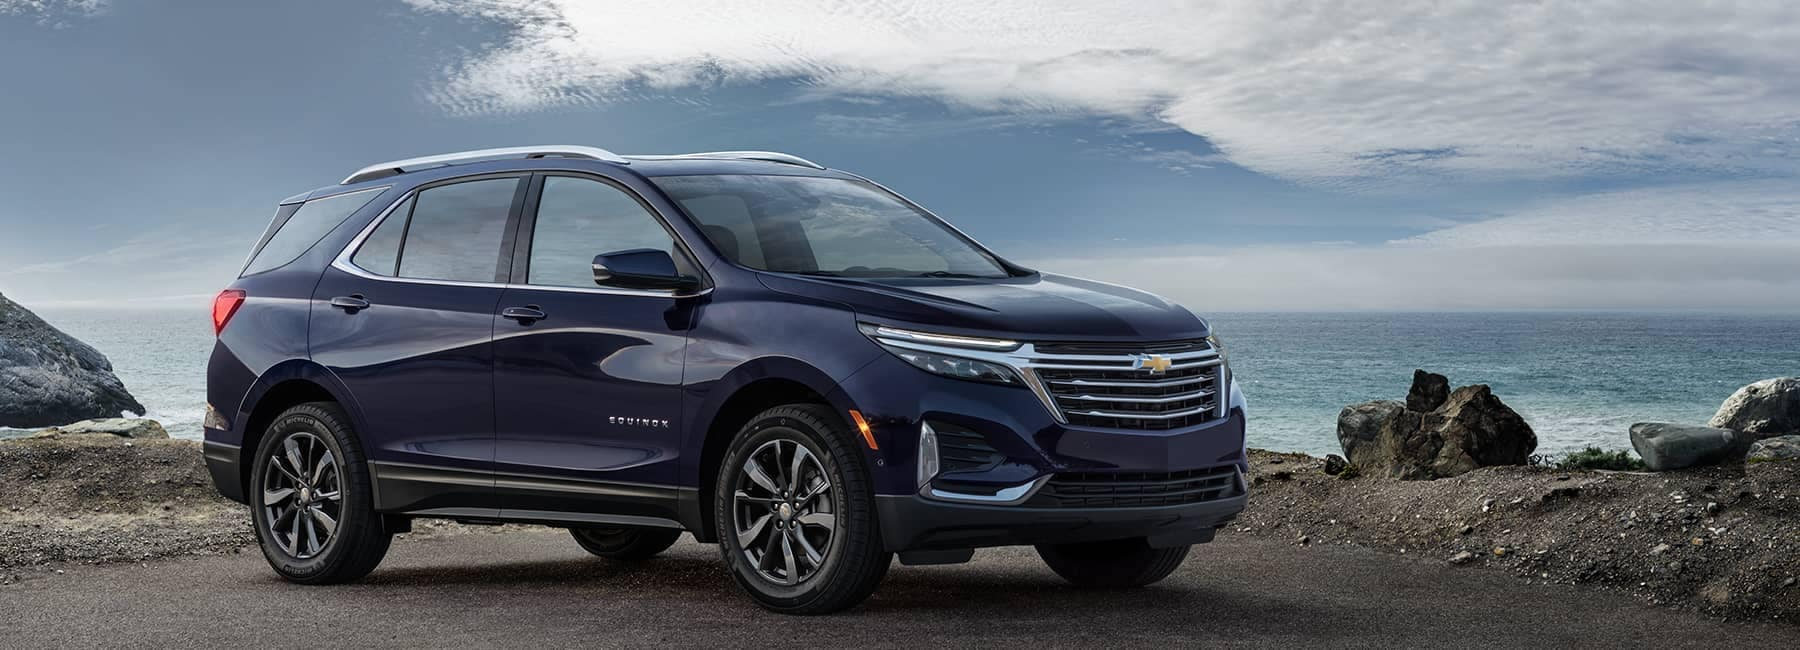 Blue 2021 Chevrolet Equinox Along the Ocean